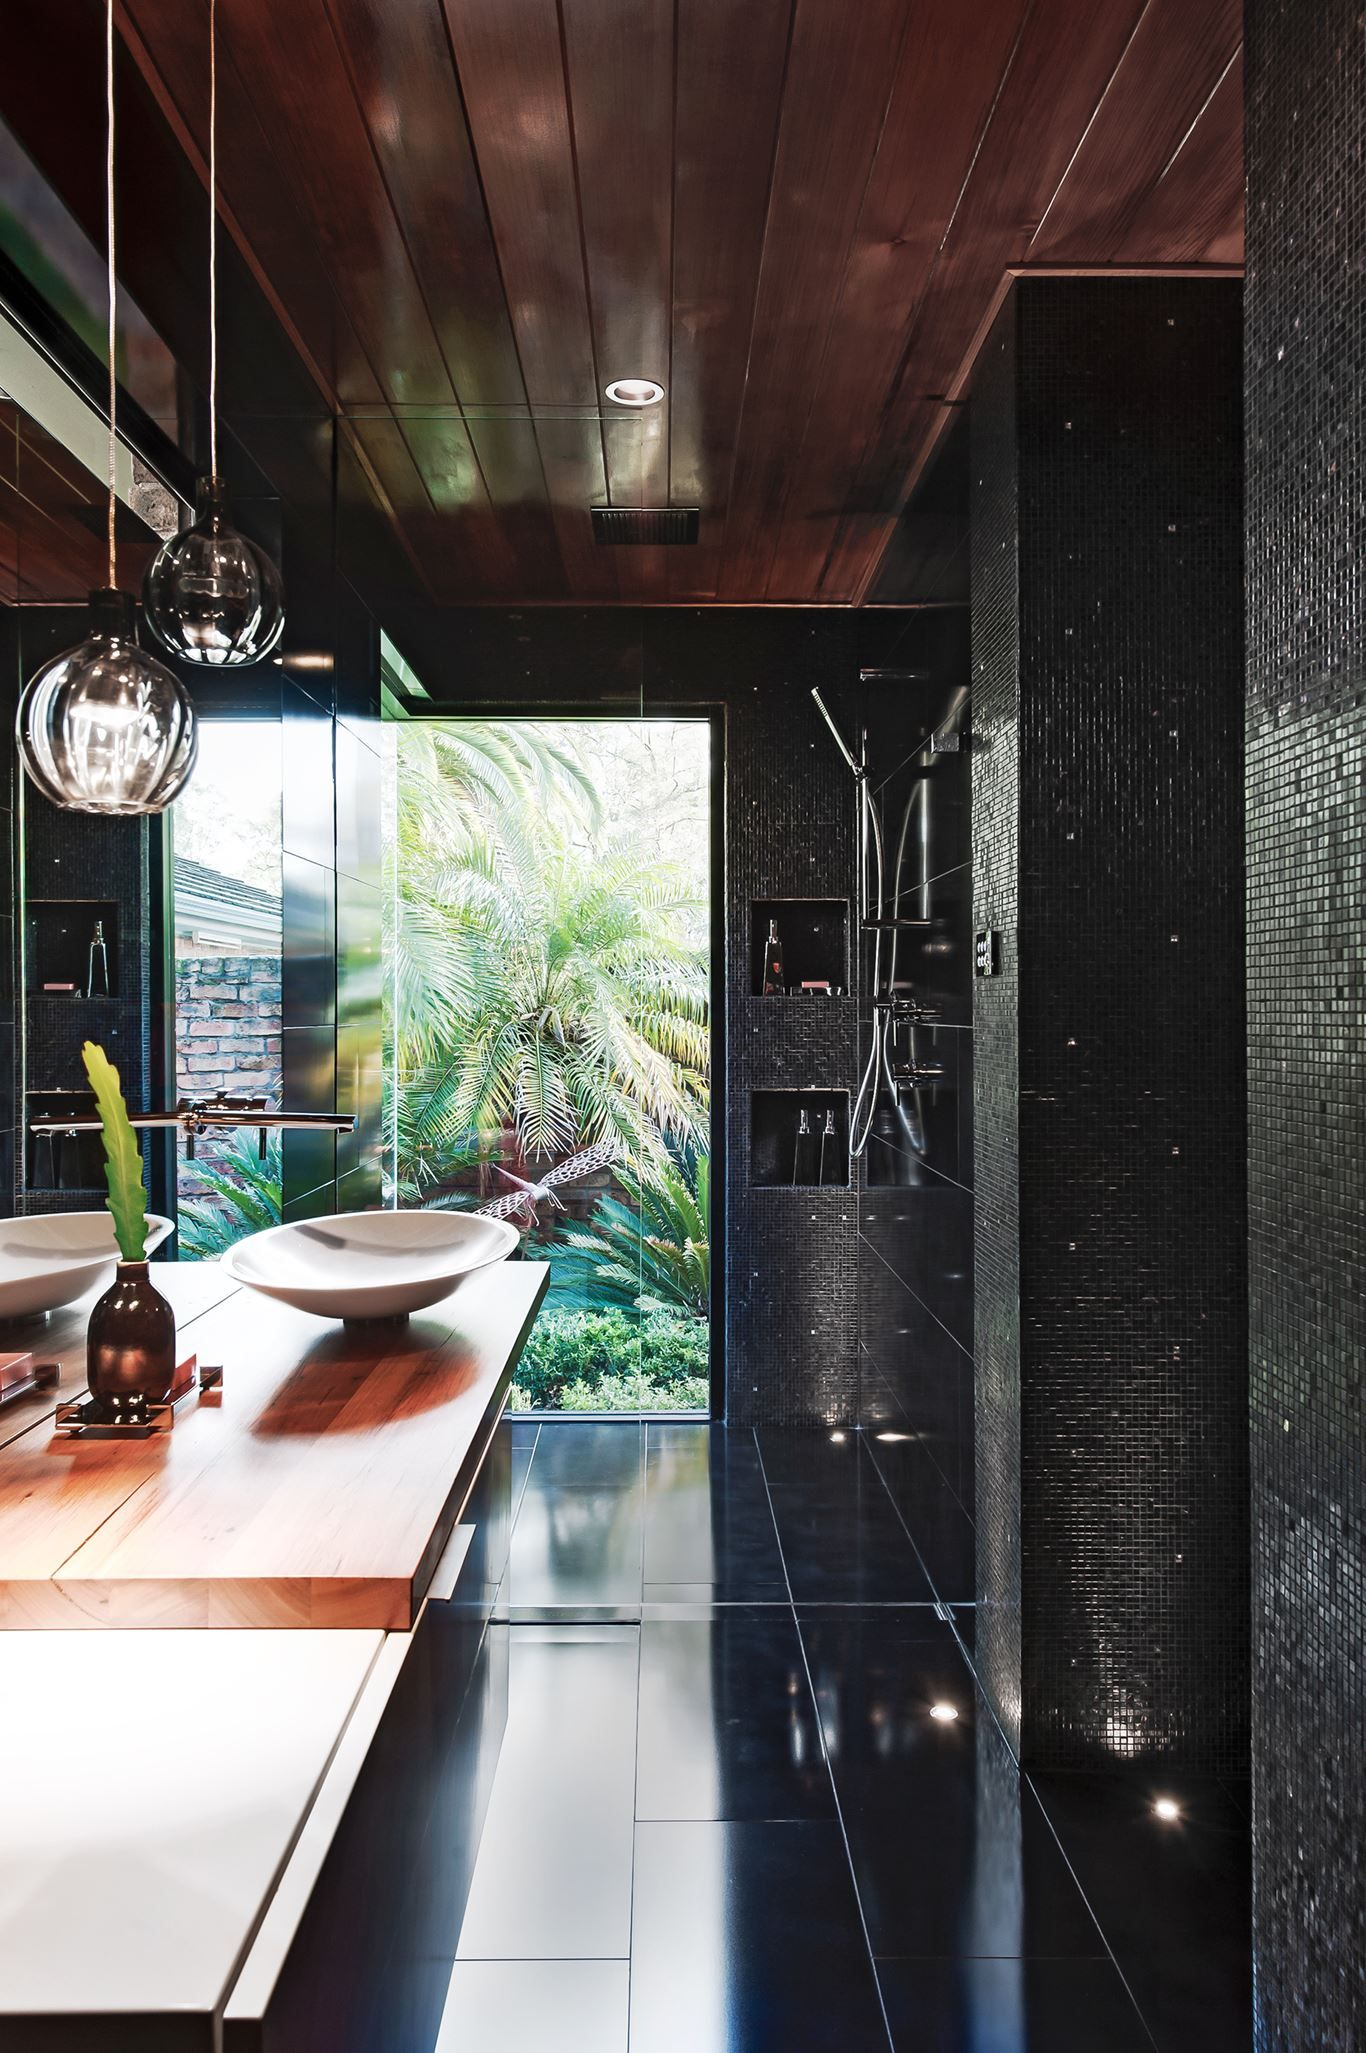 Shower with window ideas  take it outside create the sensation of showering outdoors with a